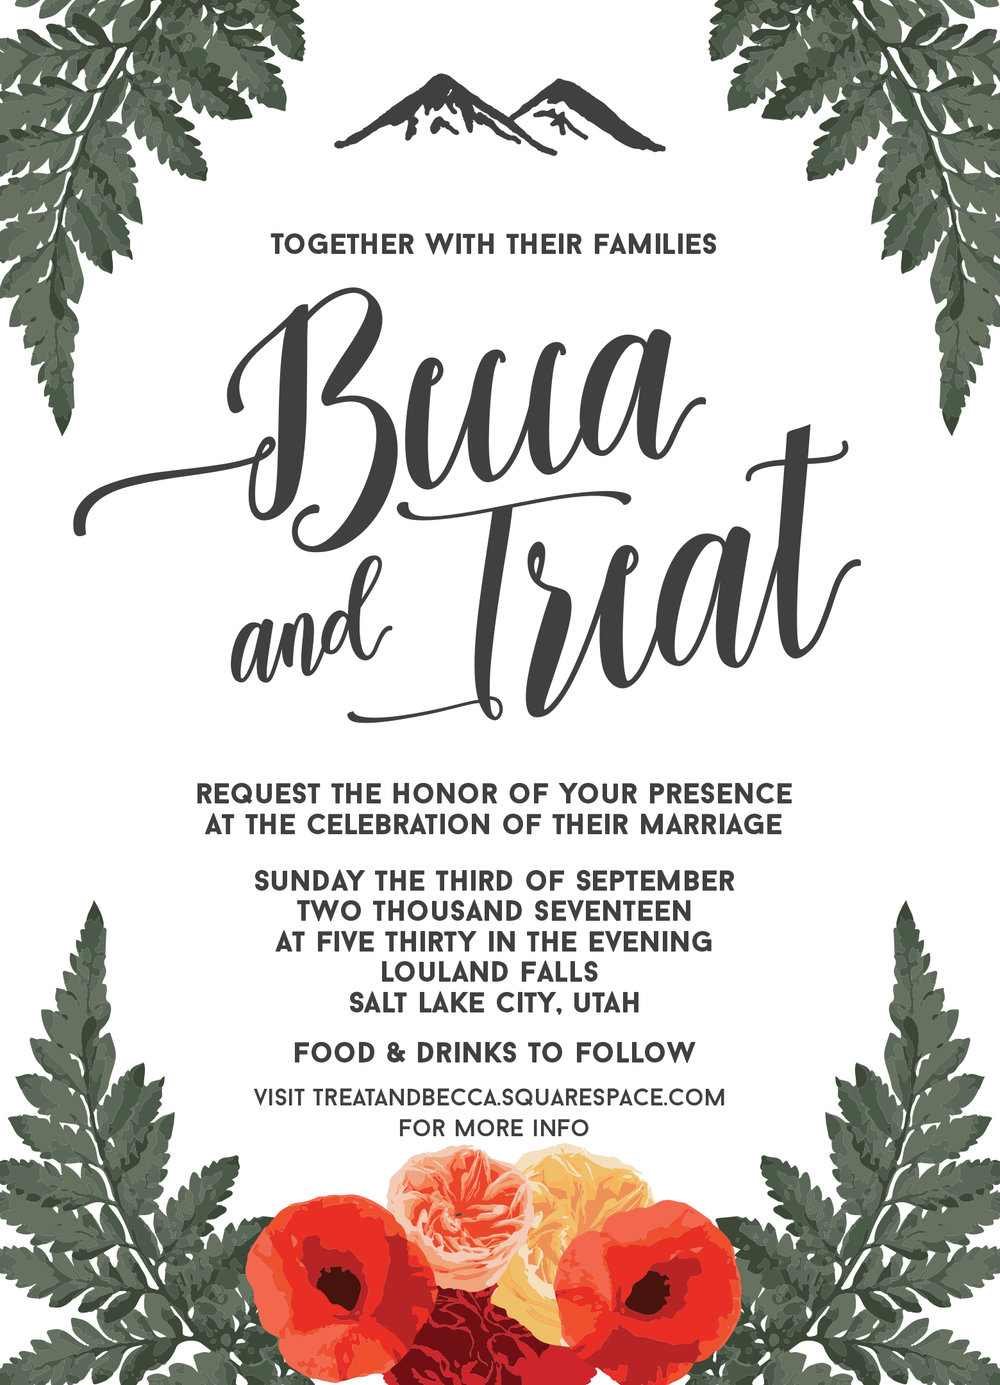 Treat+Becca-Invitations-Final4.jpg